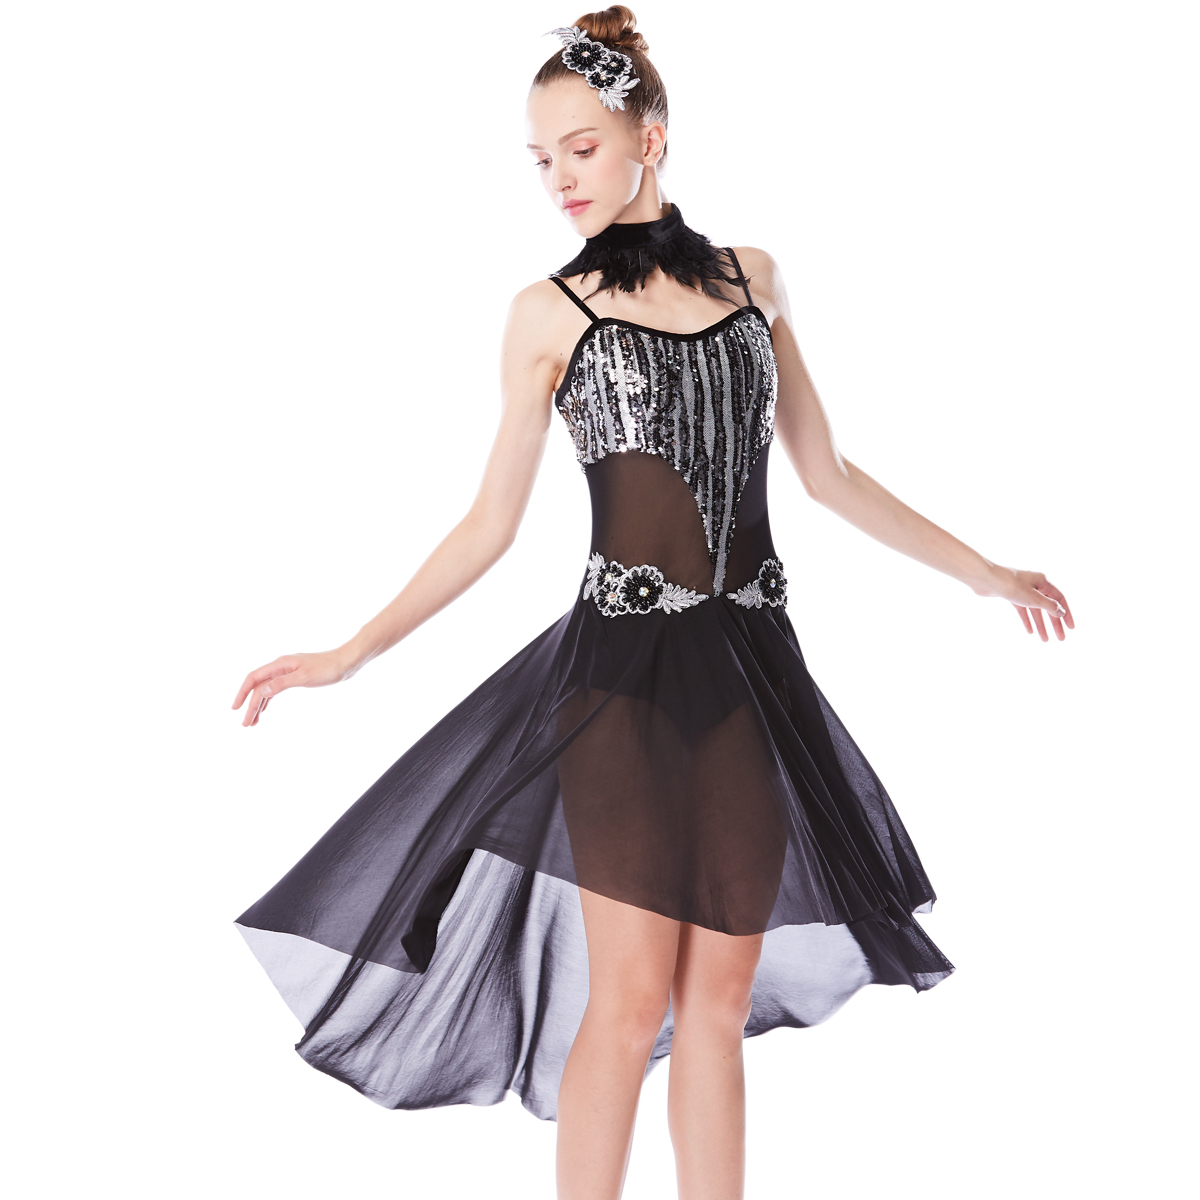 MIDEE modern lyrical contemporary costumes dance clothes stage-1